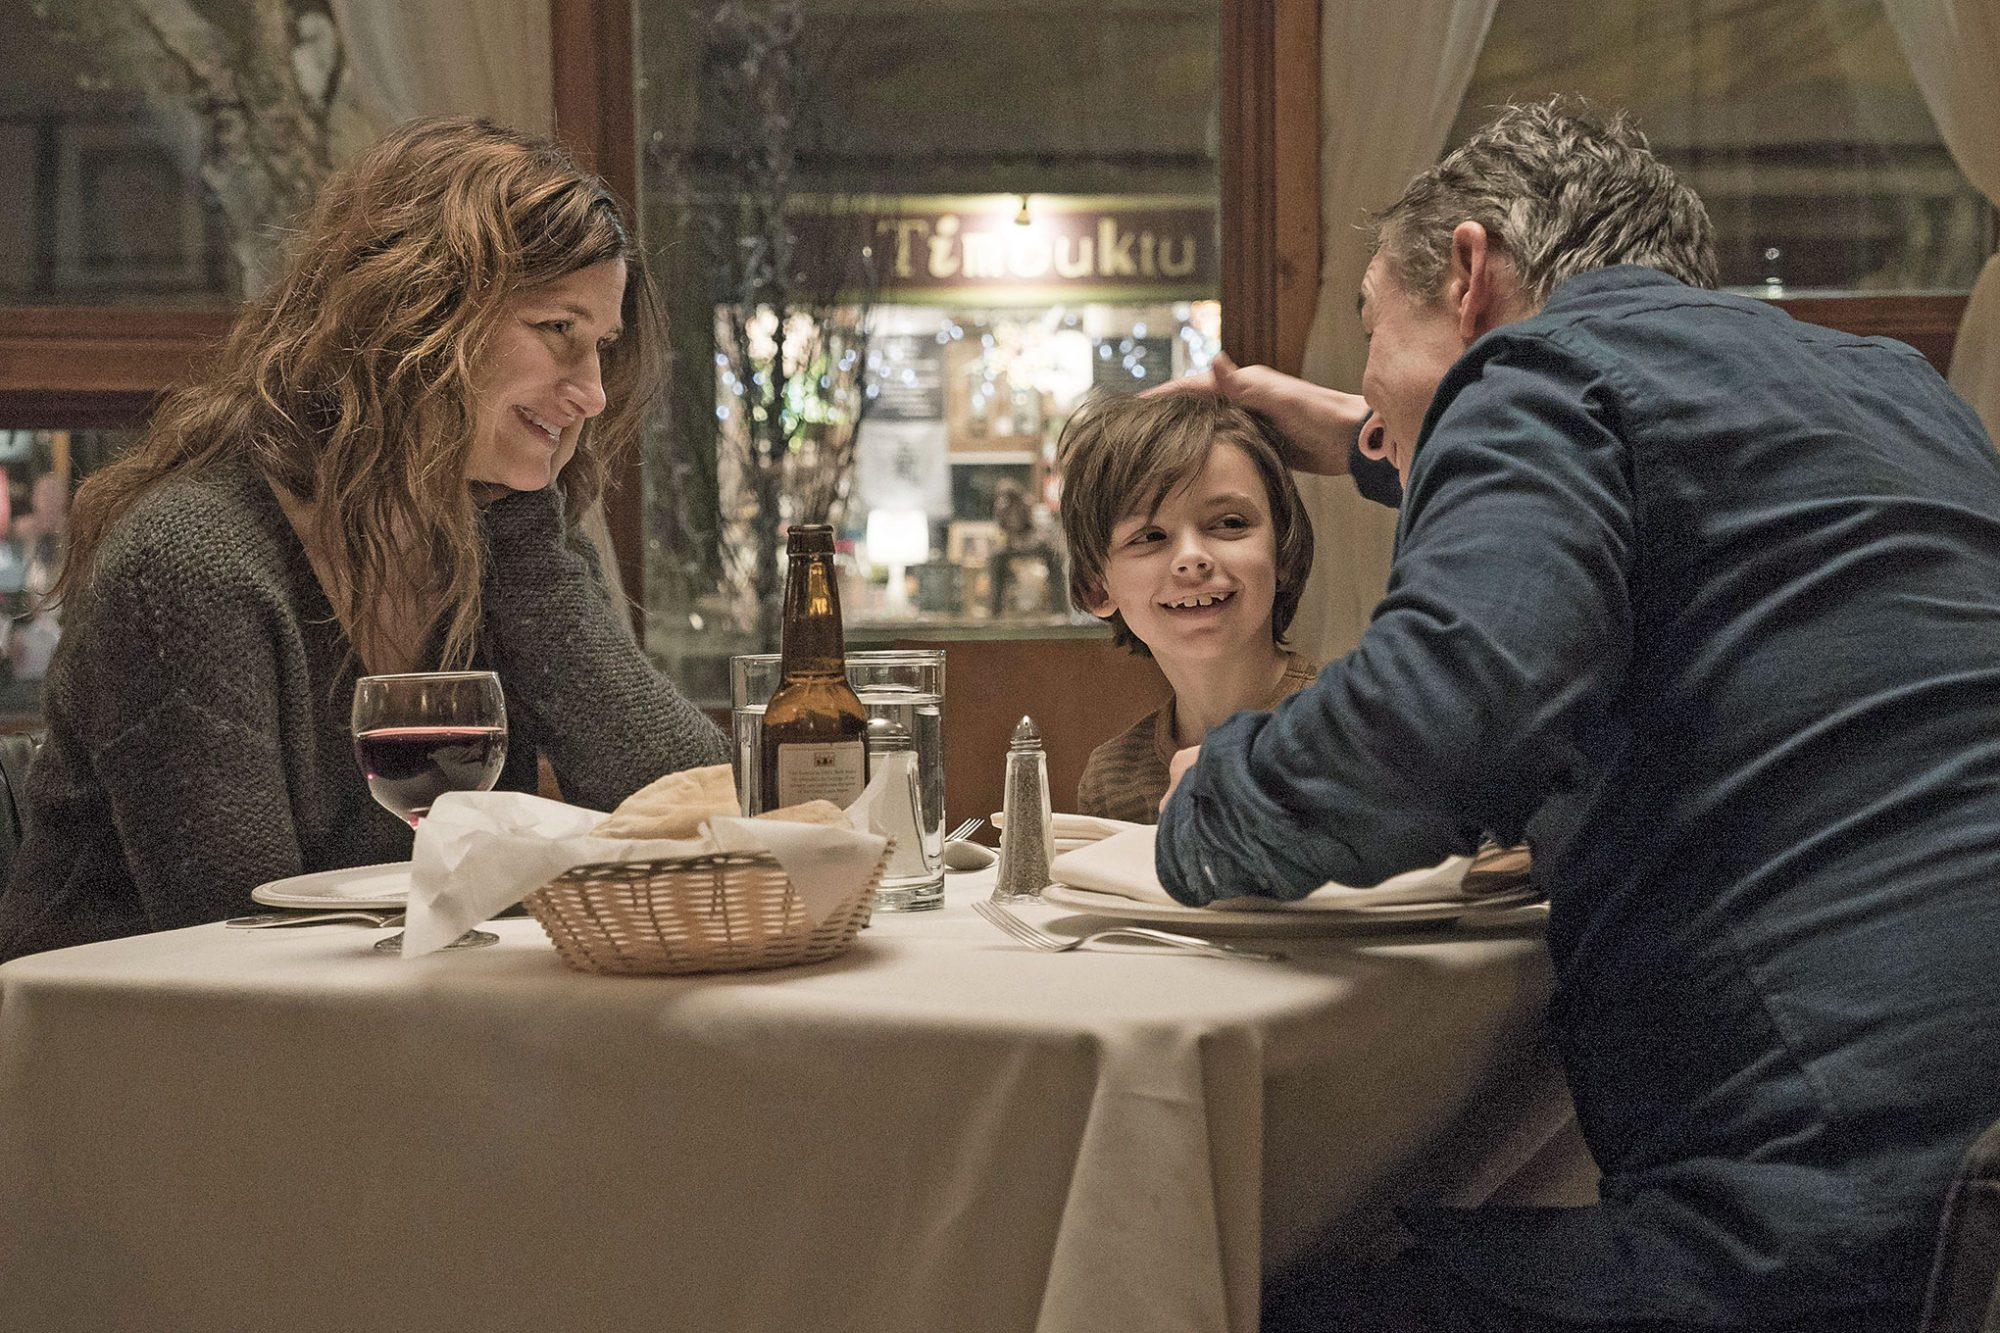 Kathryn Hahn, Sawyer Shipman, and Steve Coogan in Happyish